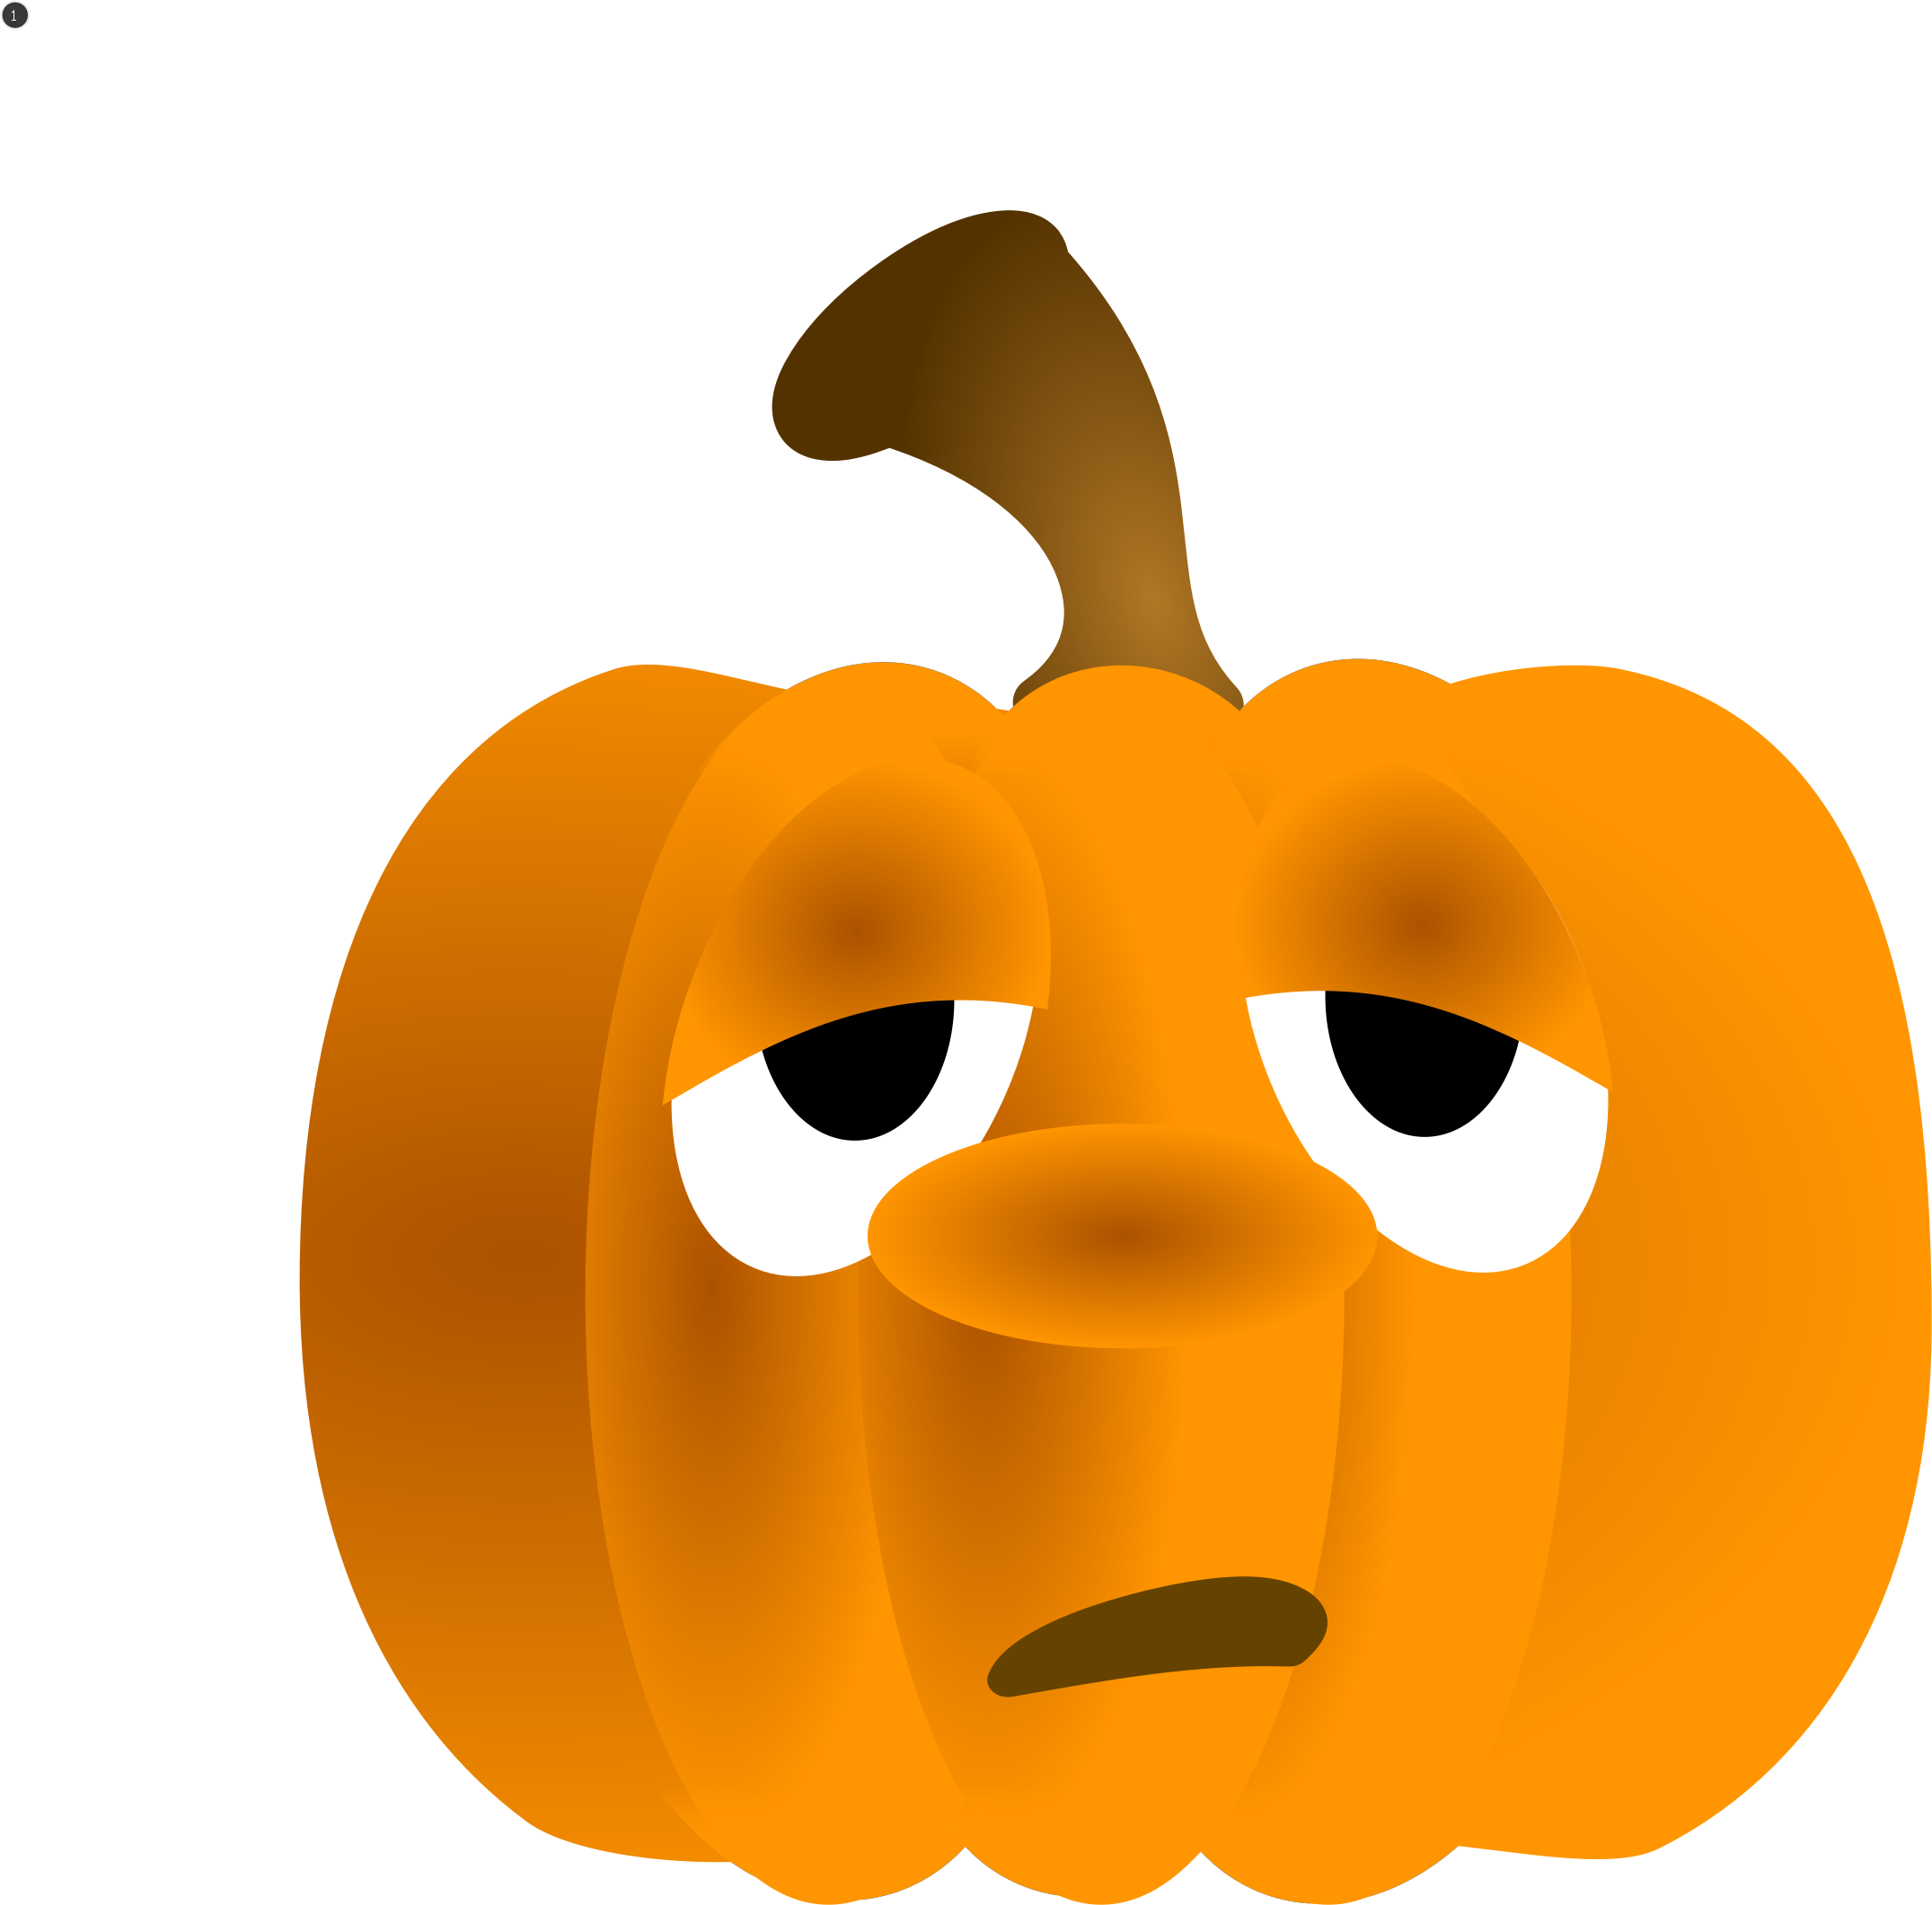 Positive clipart animated. Animation pumpkin